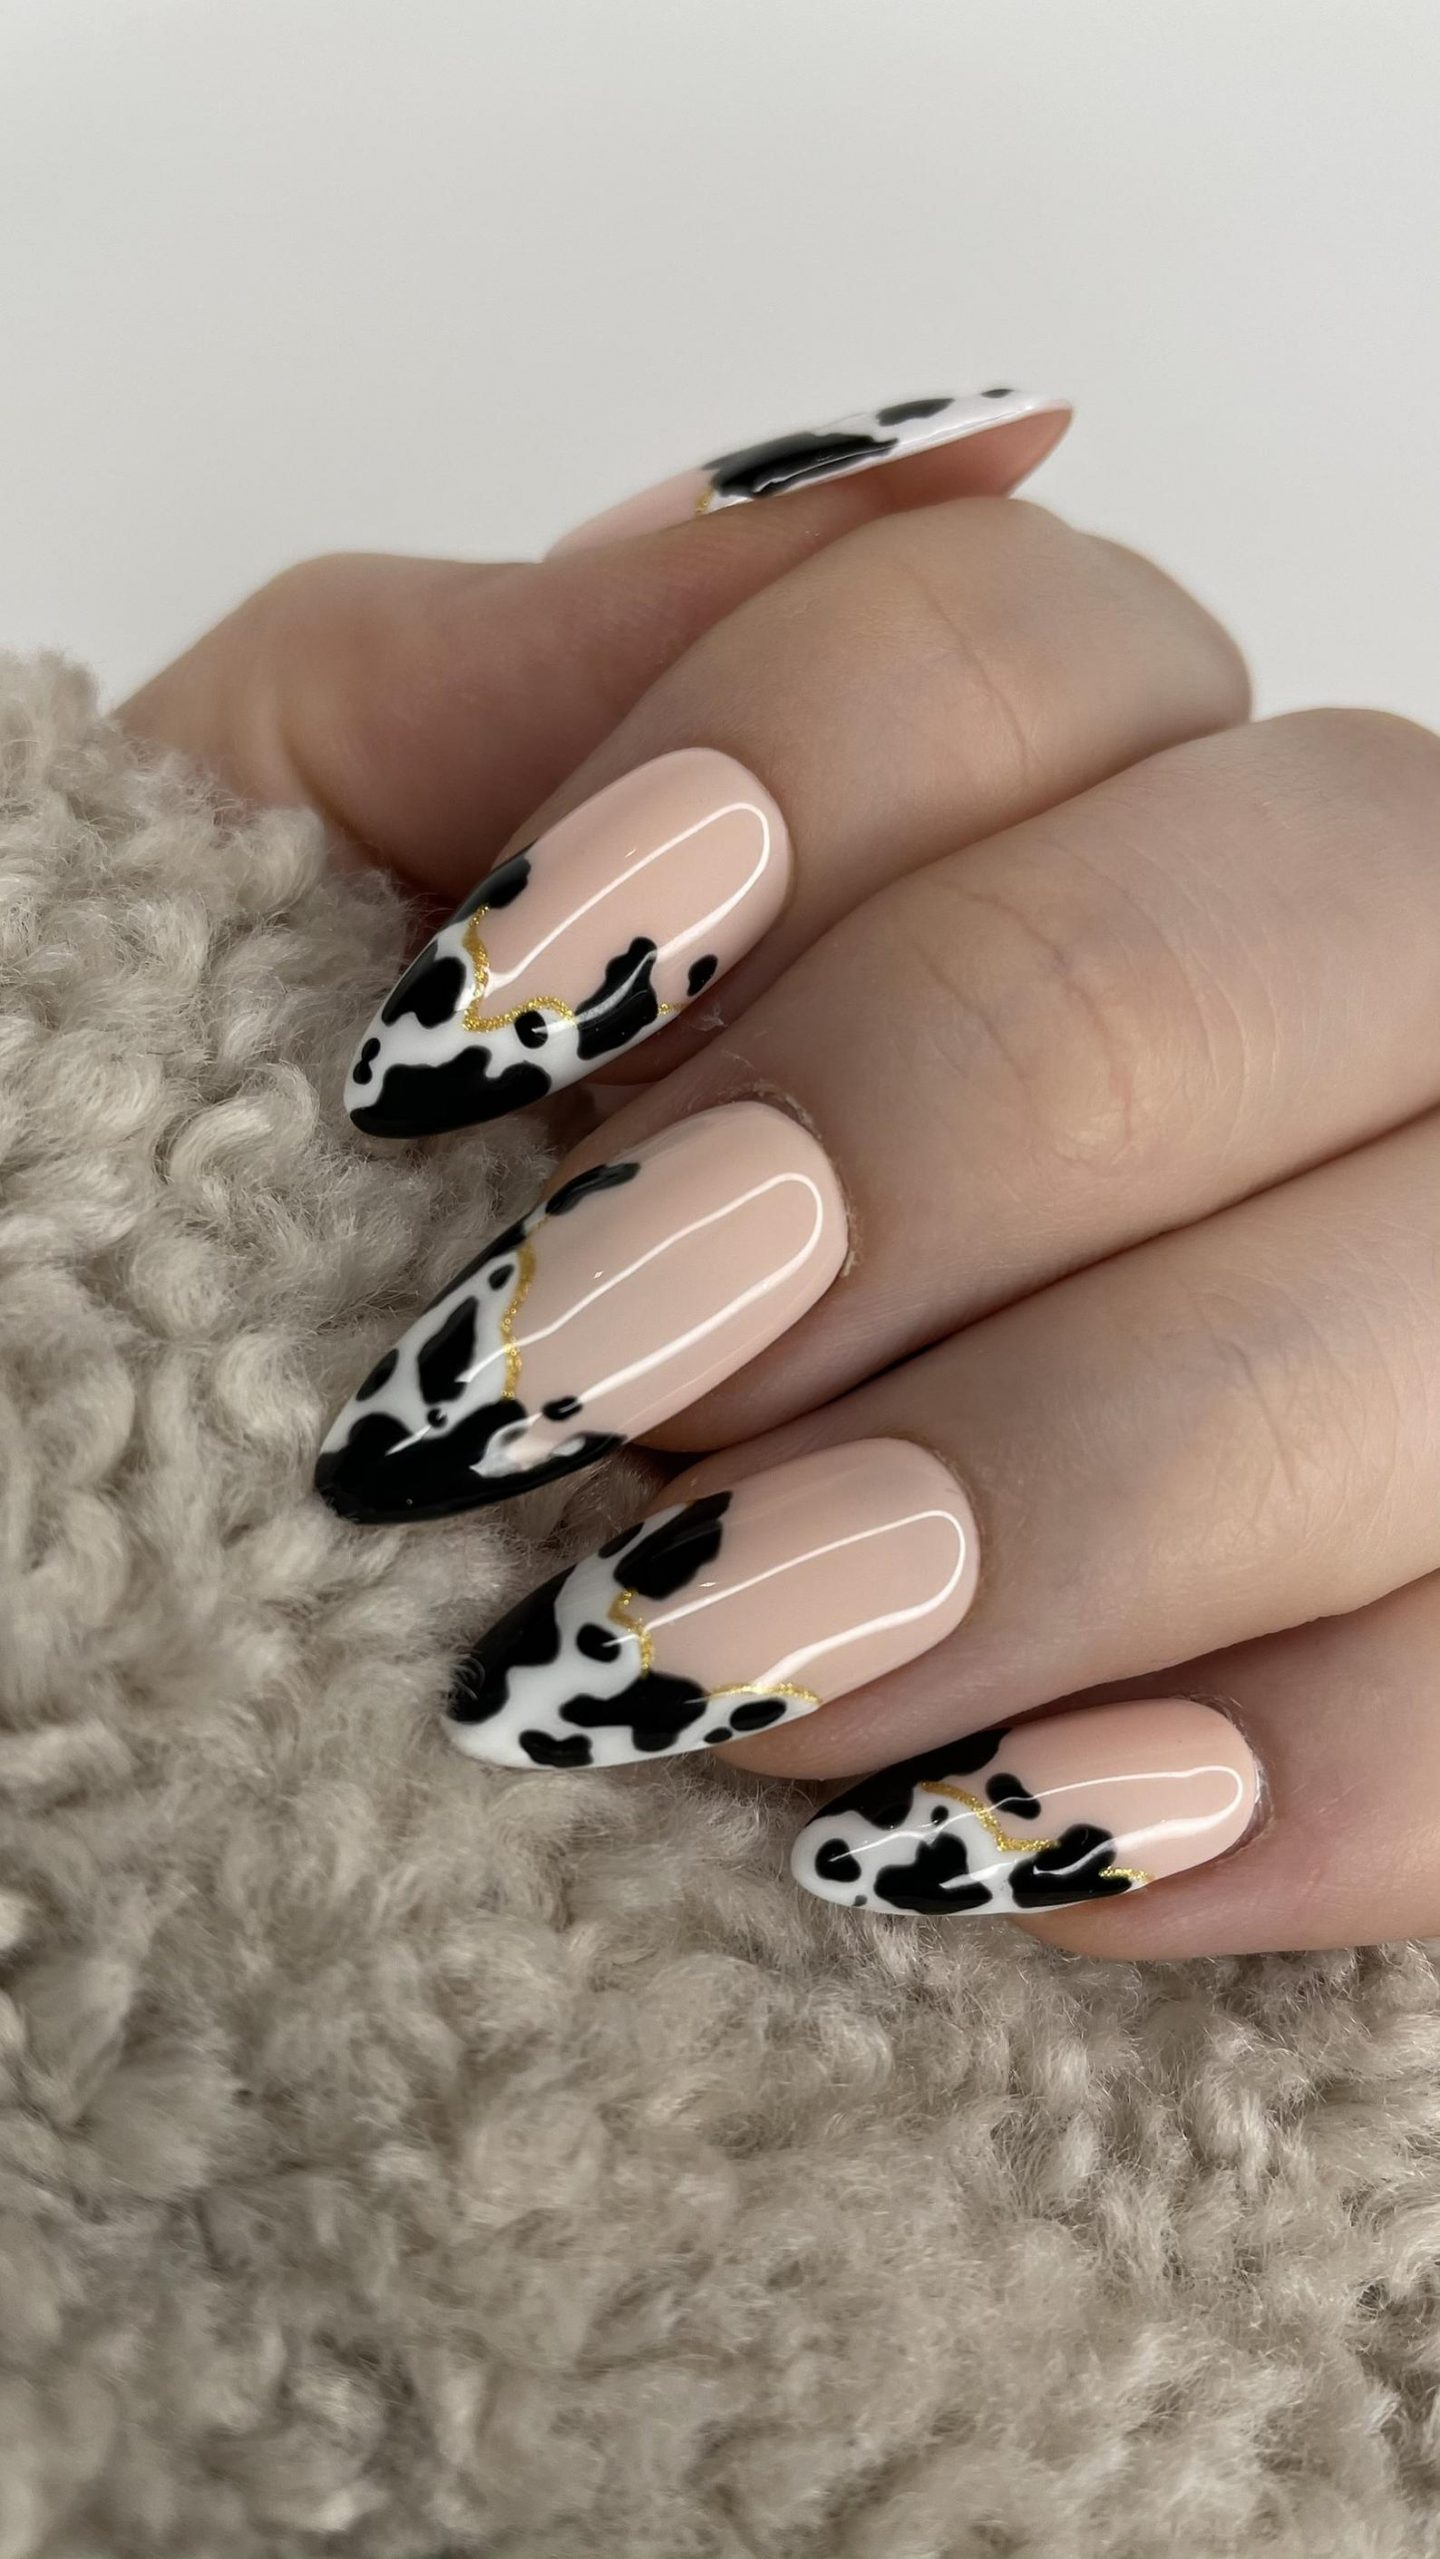 Nails with a cow patterned pink lacquer with a French tip